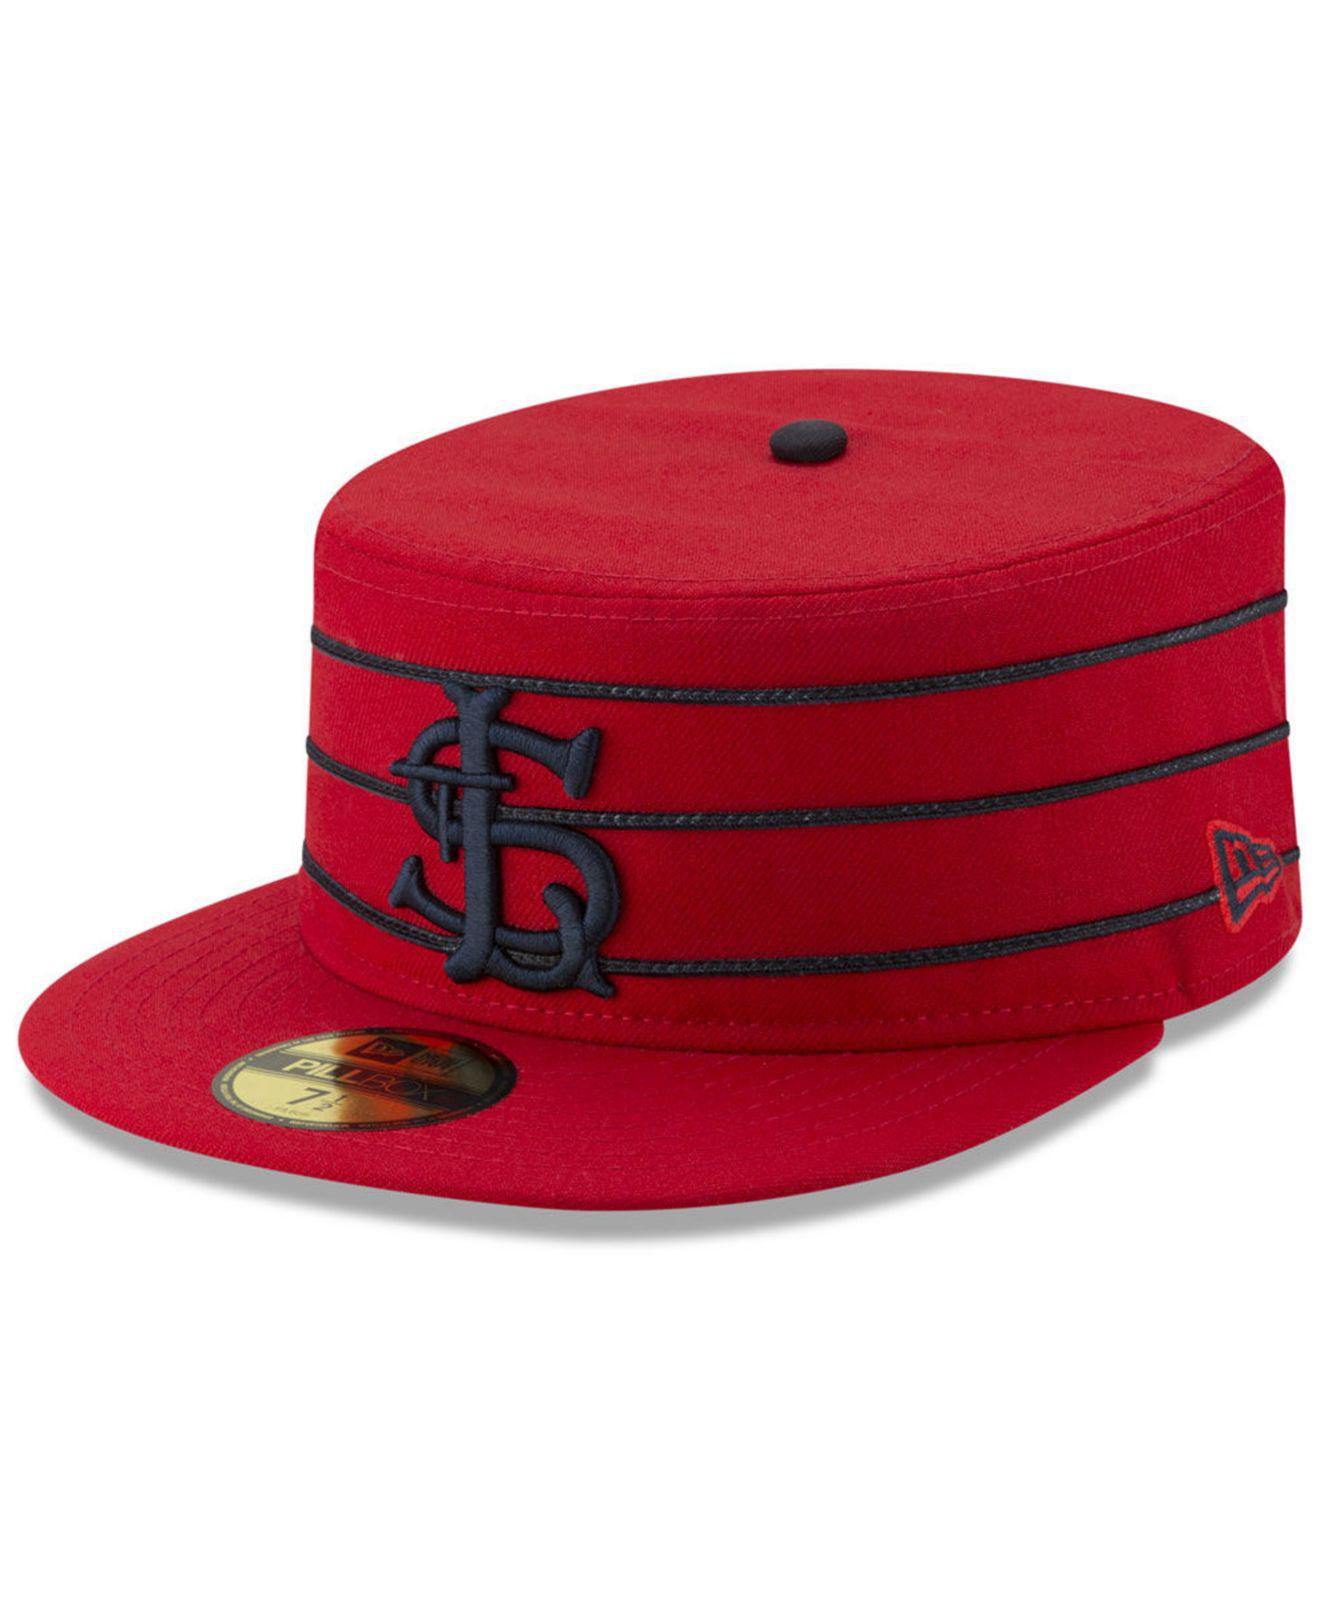 save off dd20c 86ae7 ... czech ktz. mens red st. louis cardinals pillbox 59fifty fitted cap  f5c75 828c9